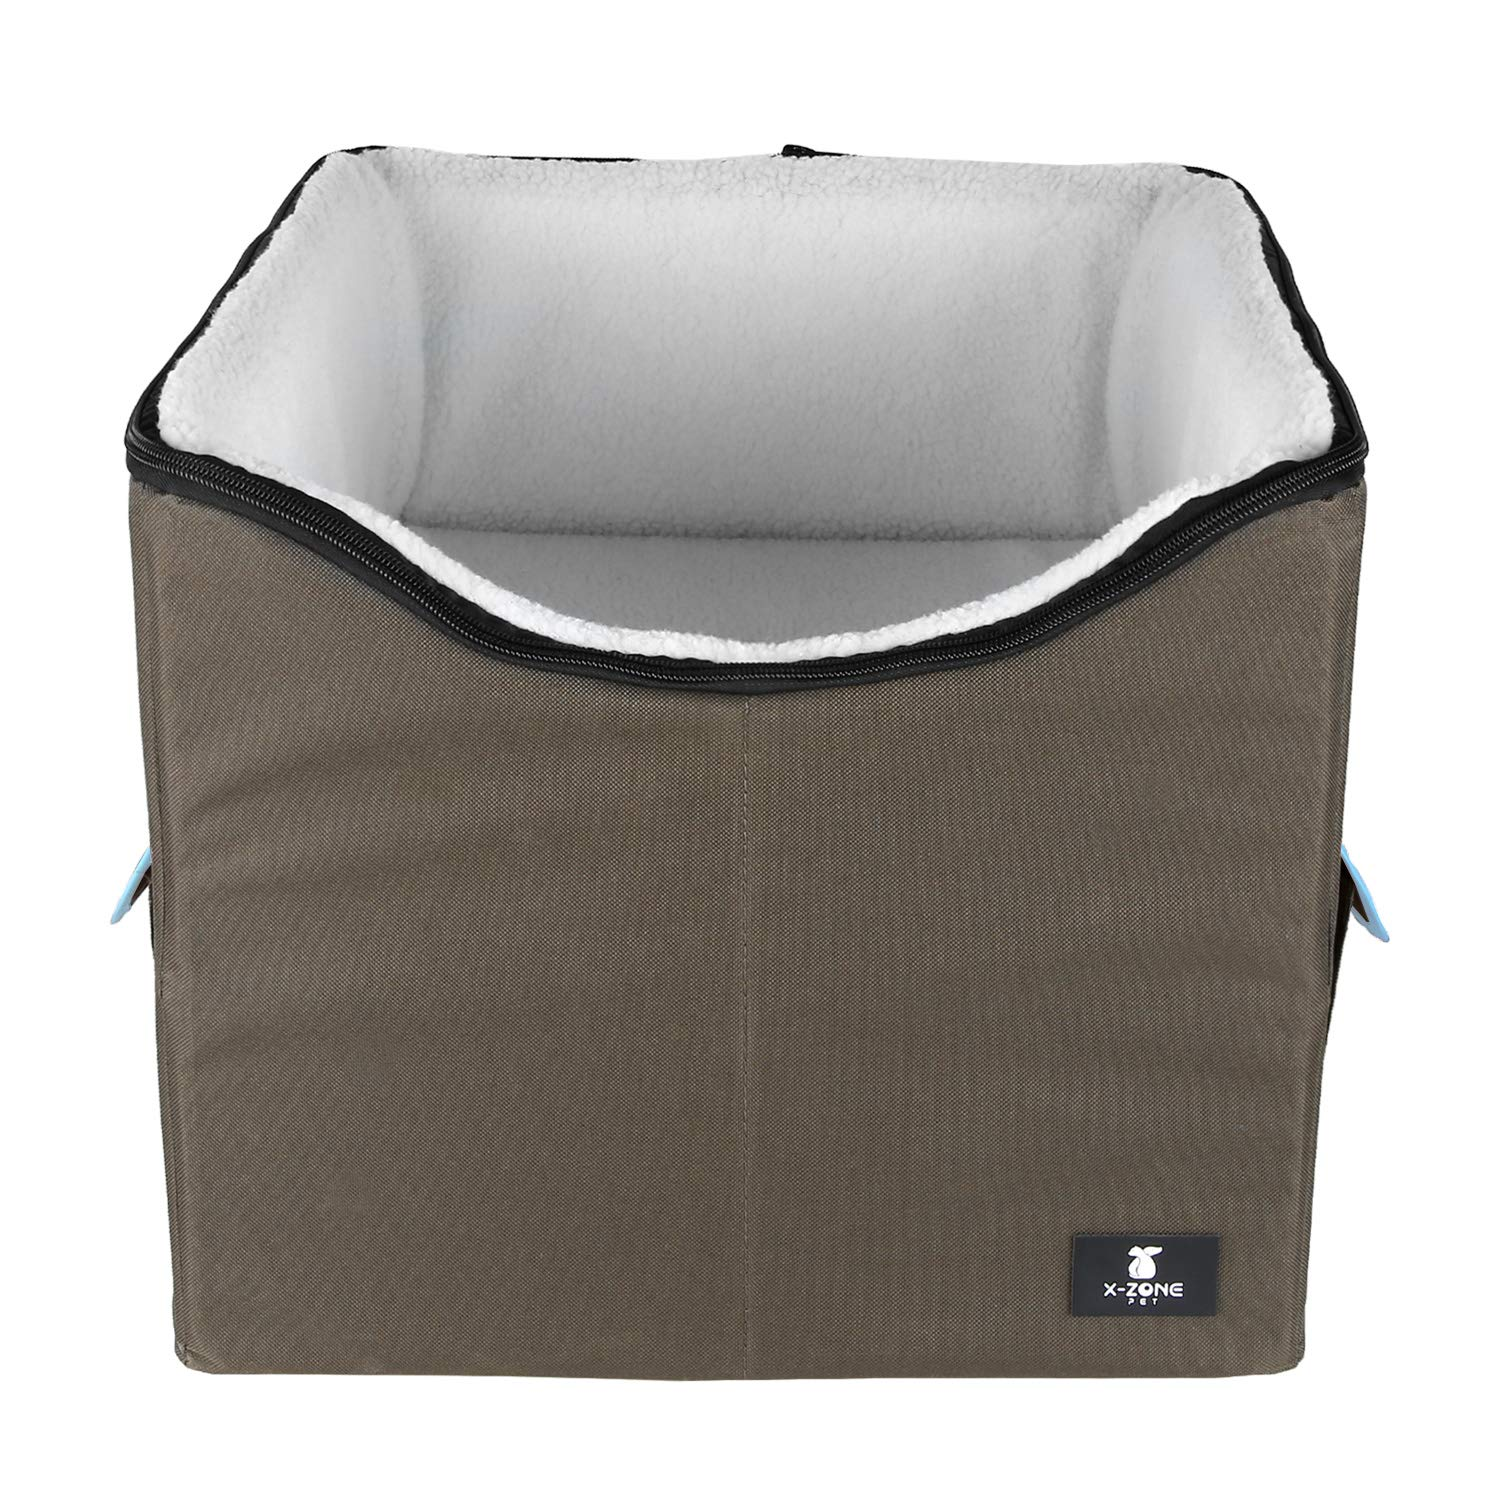 X-ZONE PET Dog Booster Car Seat/Pet Bed at Home, with Pockets and Carrying case,Easy Storage and Portable (Medium, Brown&Blue) by X-ZONE PET